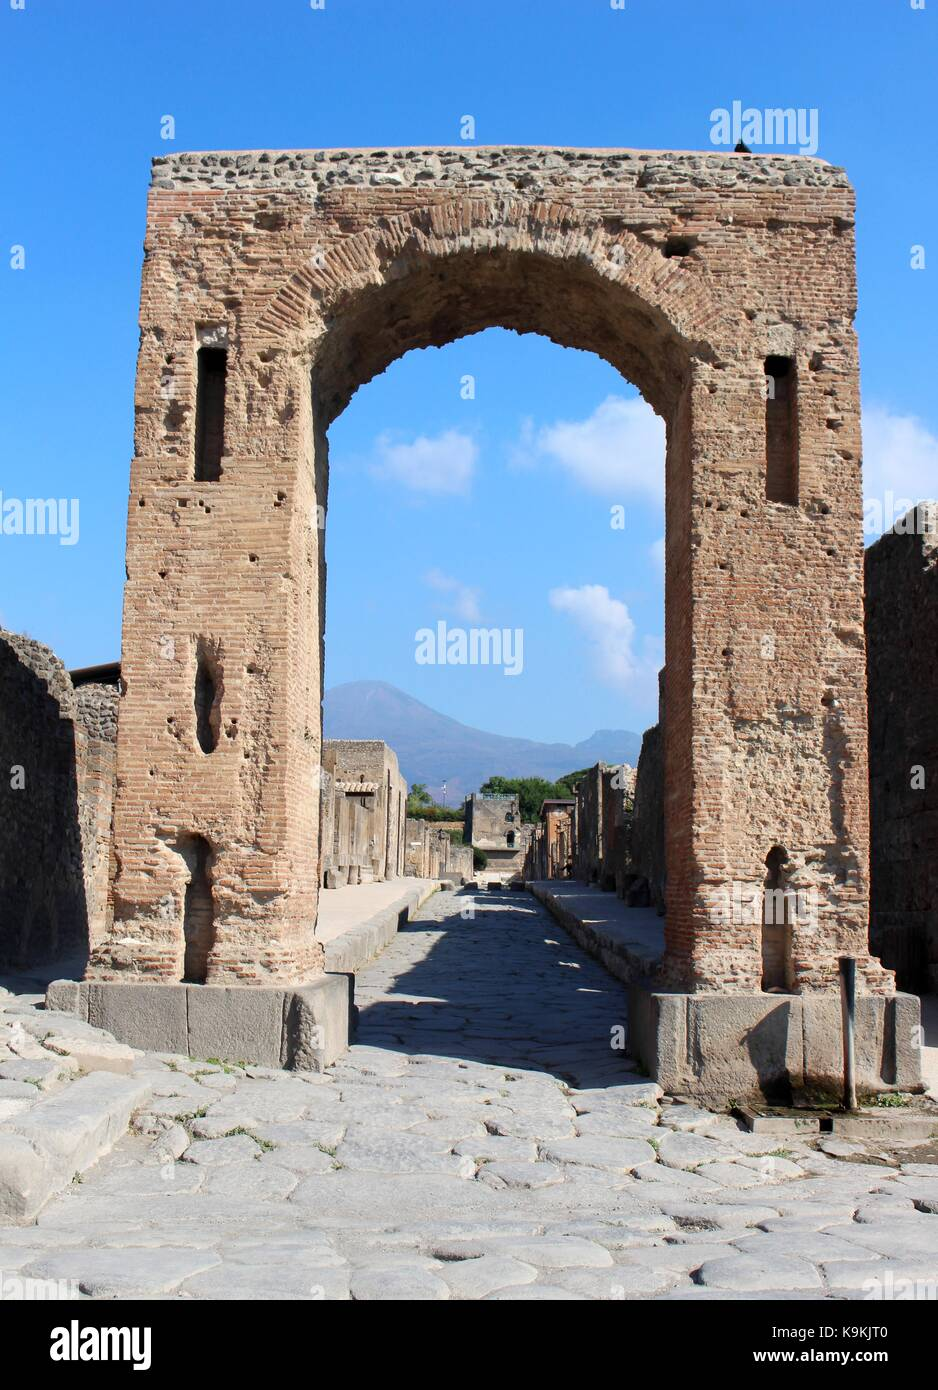 The archaeological remains of Pompeii demonstrates nature's ability to destroy and preserve. - Stock Image